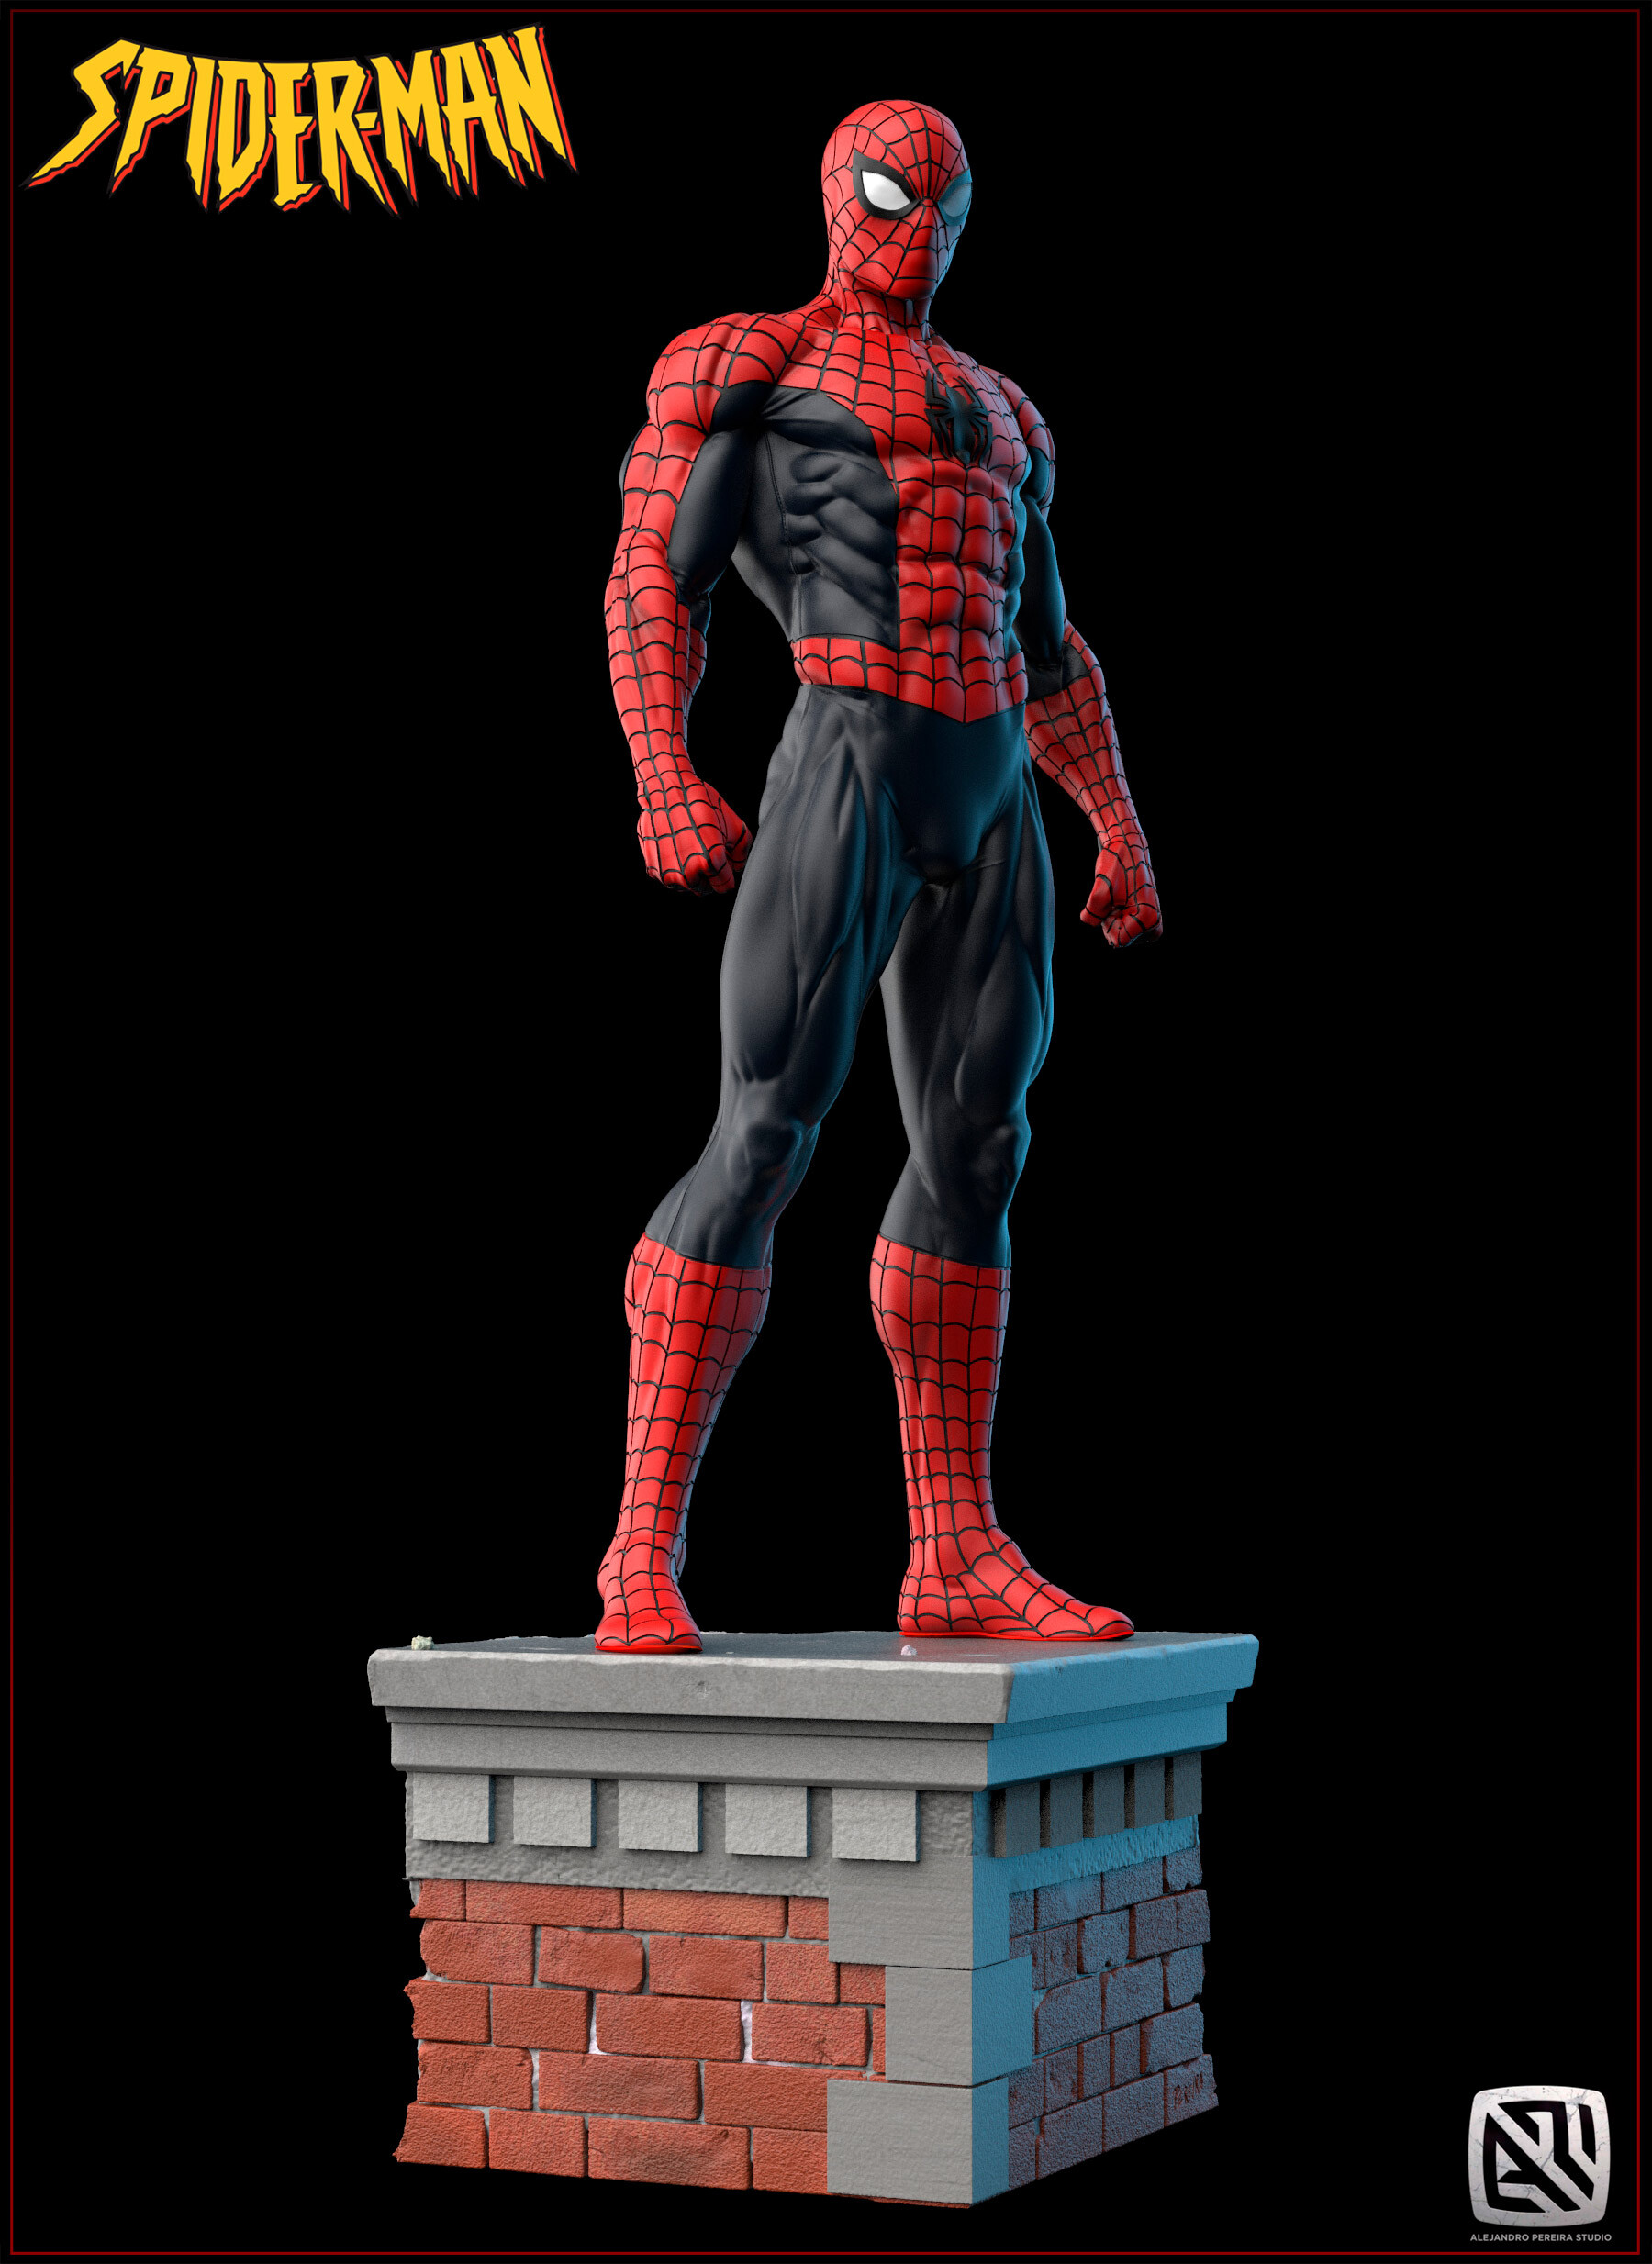 Alejandro pereira spidey render color 011